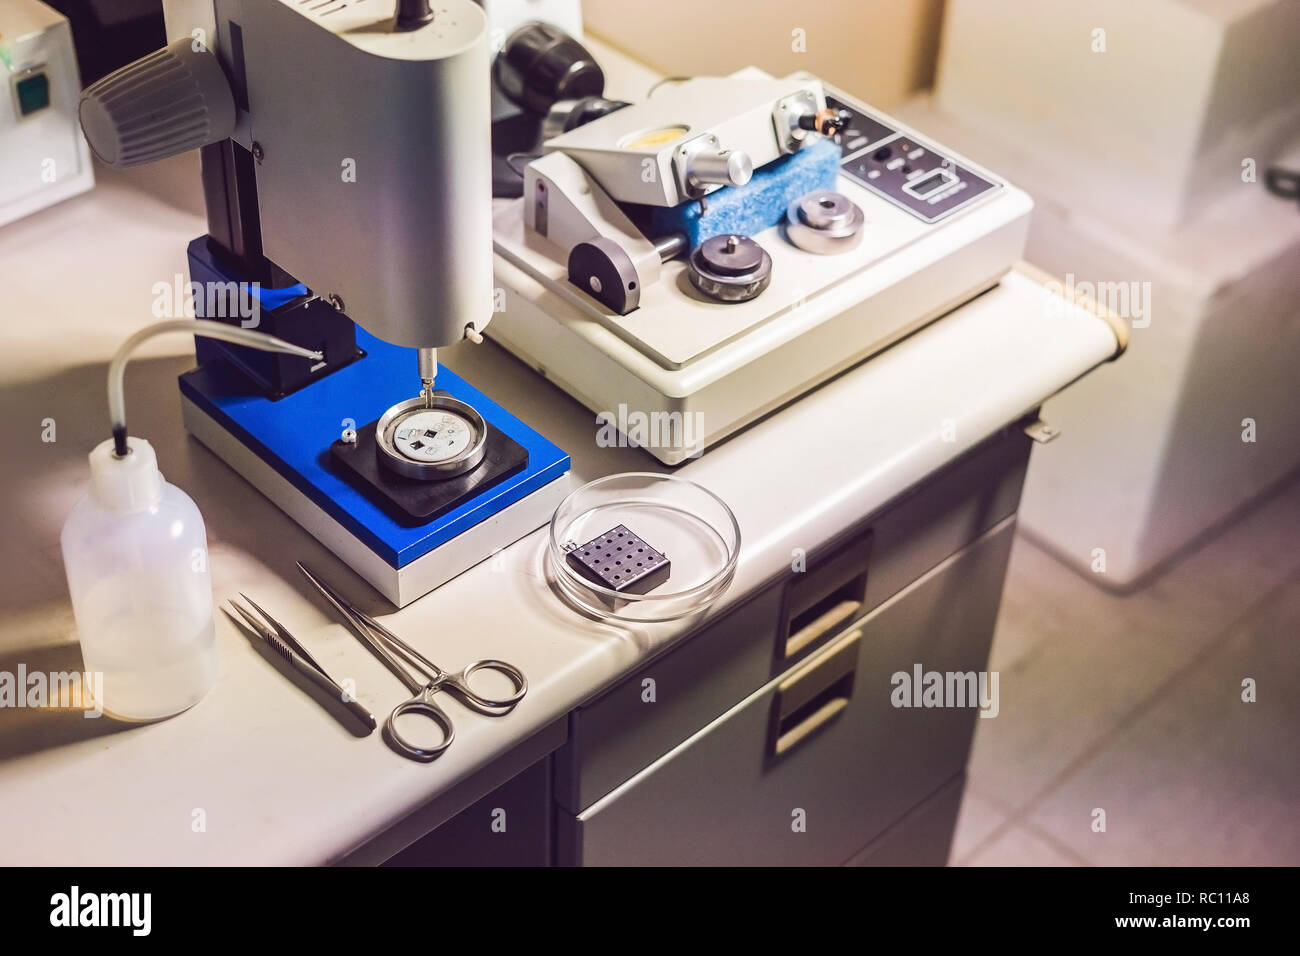 Ultrasonic Cutter System and precision micrometer grinder polishing machine used to prepare samples for electronic microscopy investigation - Stock Image